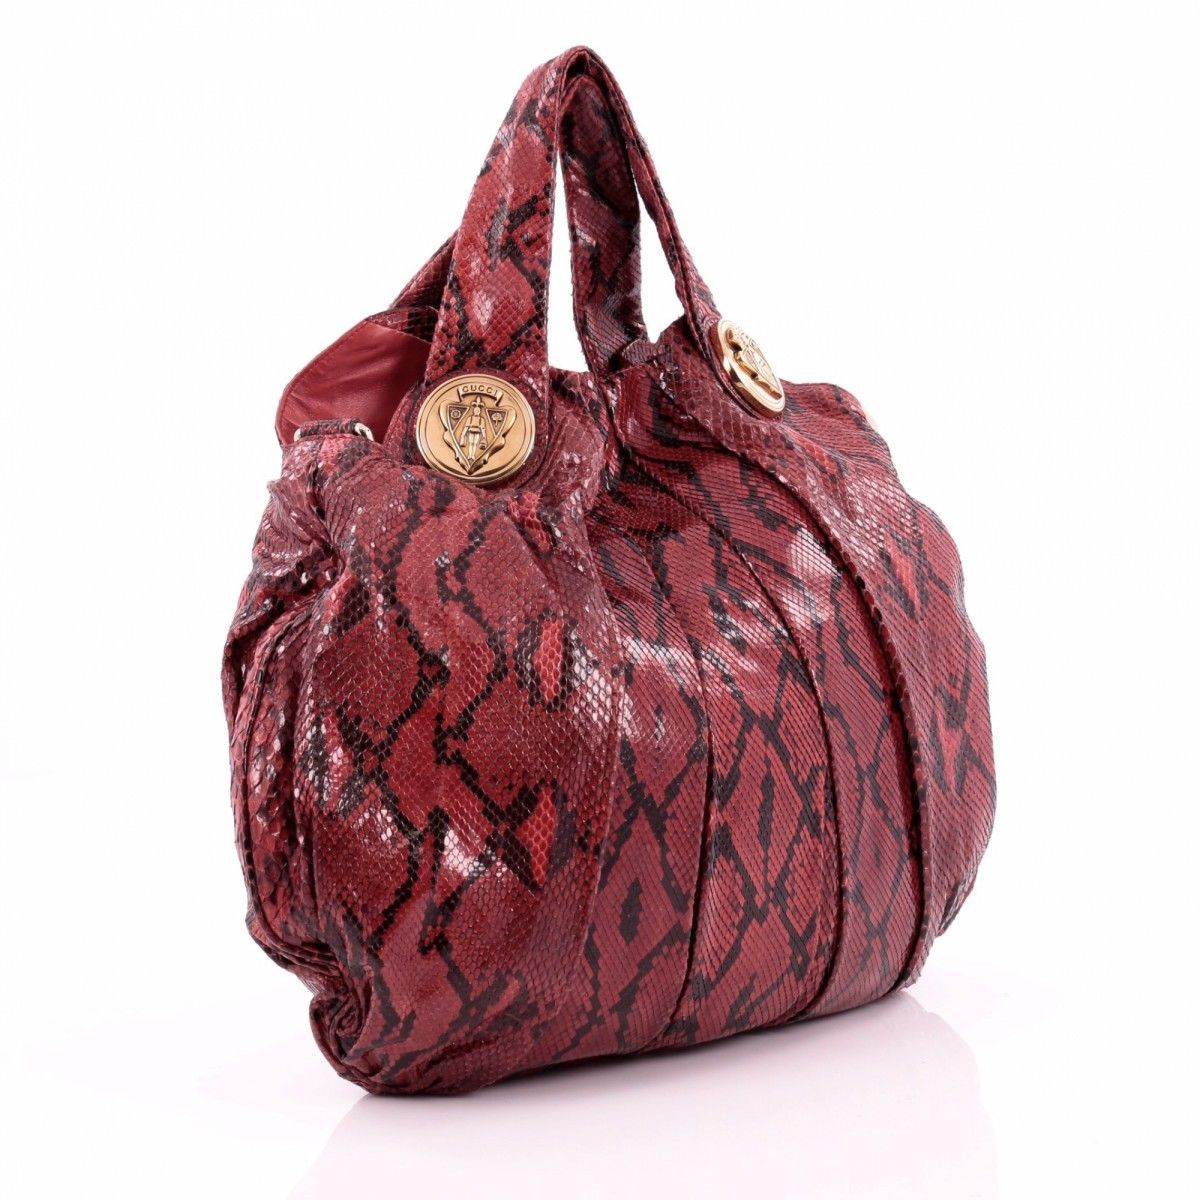 3162f1384ec Gucci Hysteria Python Two Way Bag Leather - LXRandCo - Pre-Owned ...